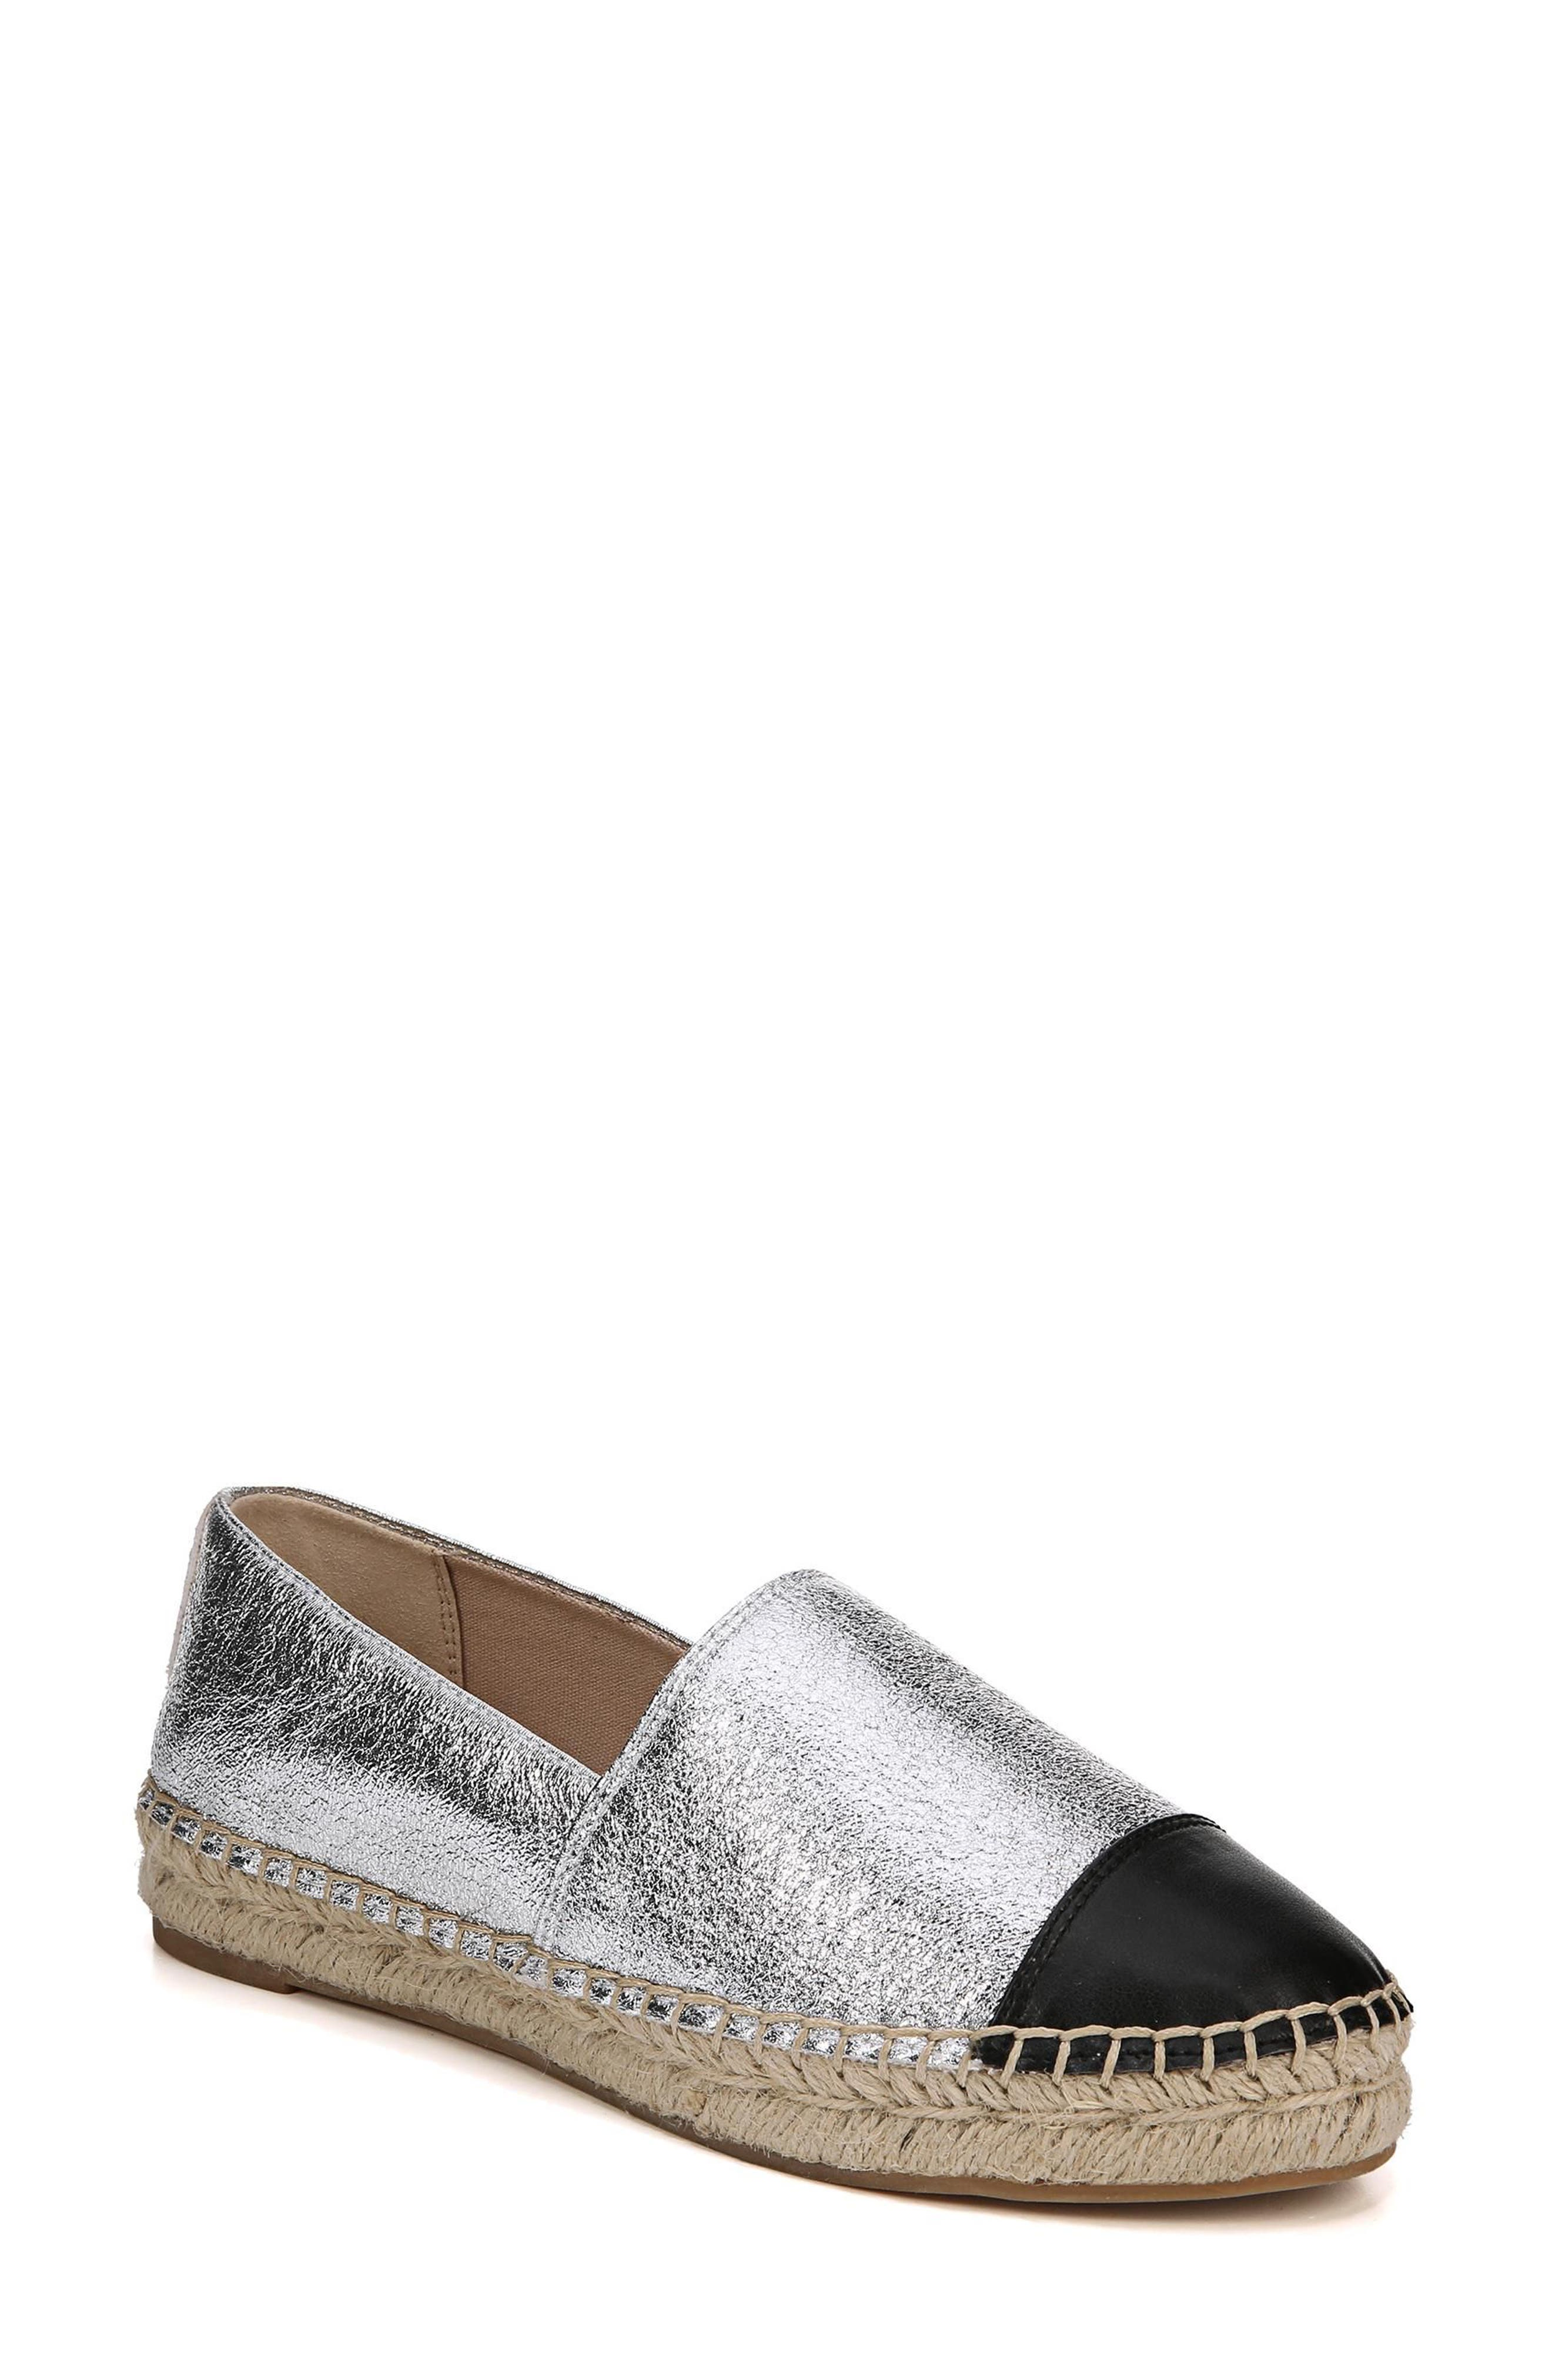 Krissy Espadrille Flat,                         Main,                         color, Soft Silver Fabric